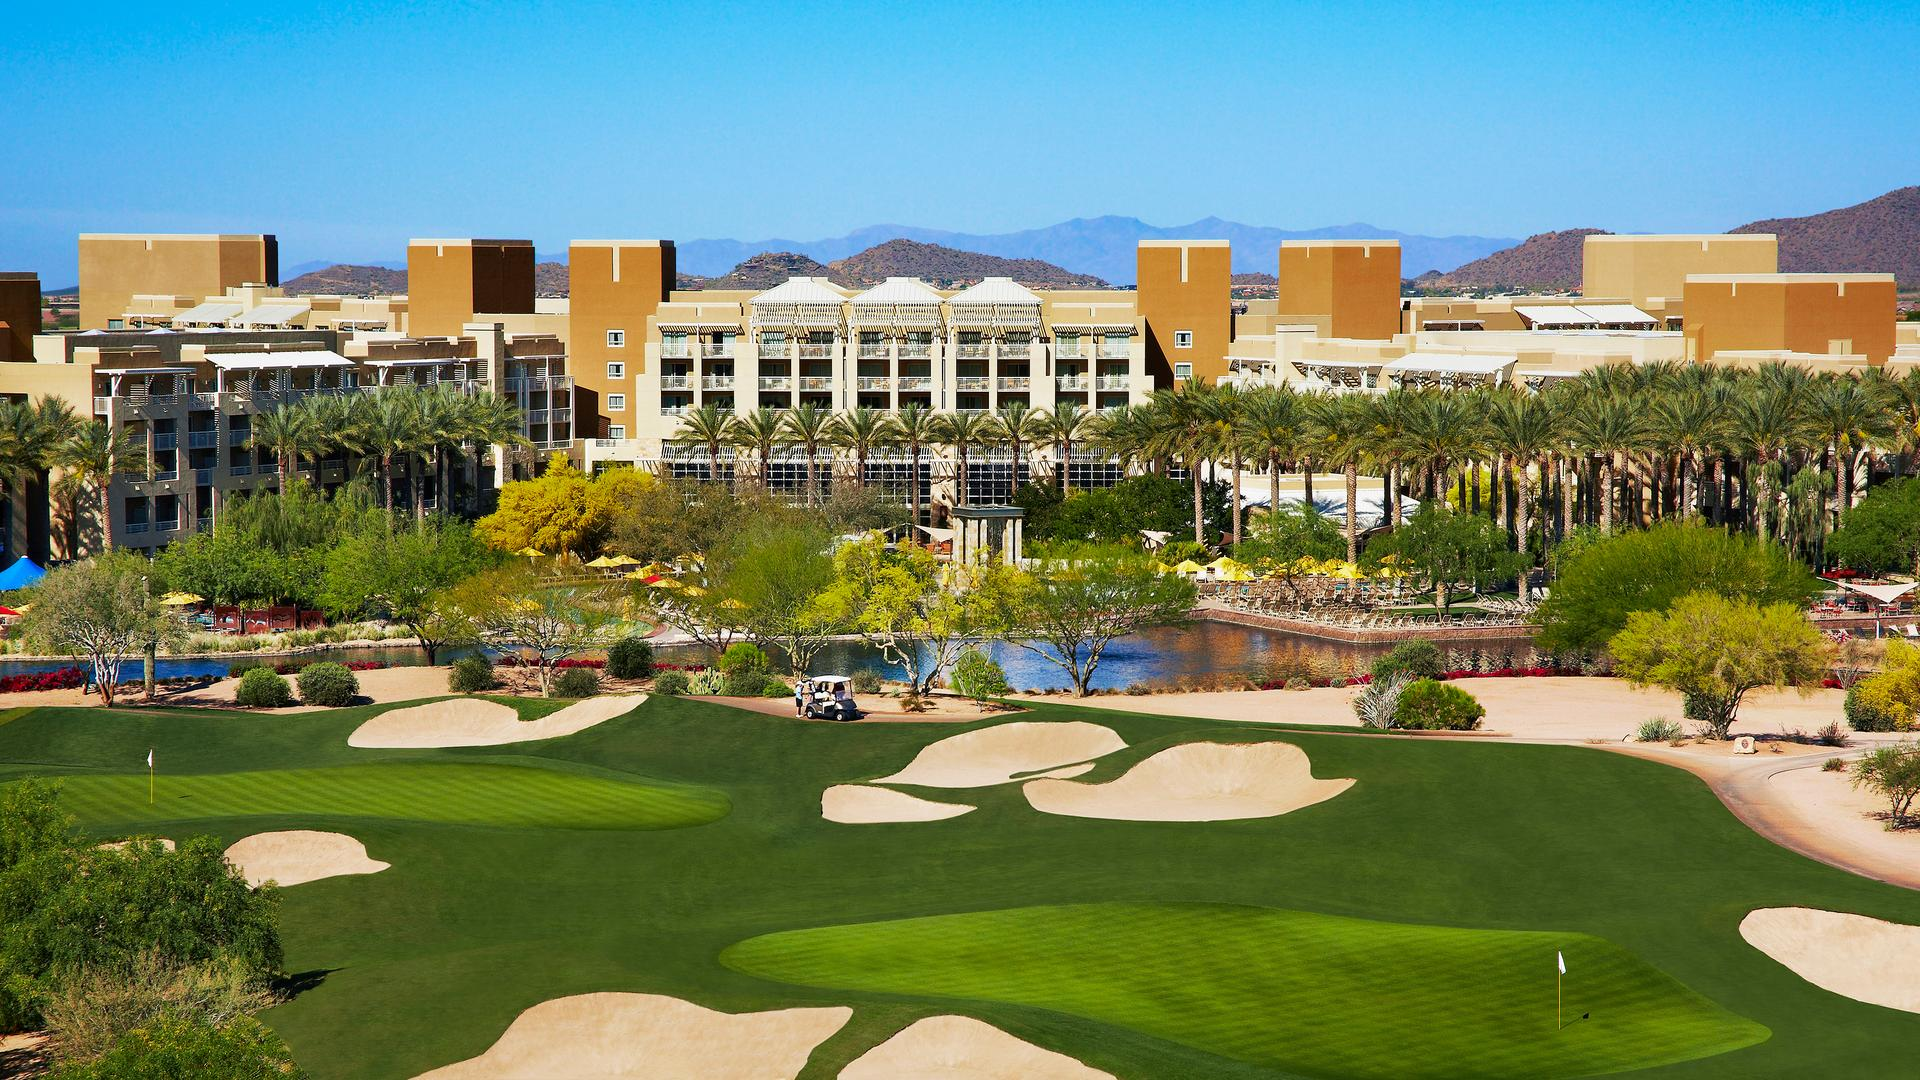 space at JW Marriott Desert Ridge Resort & Spa